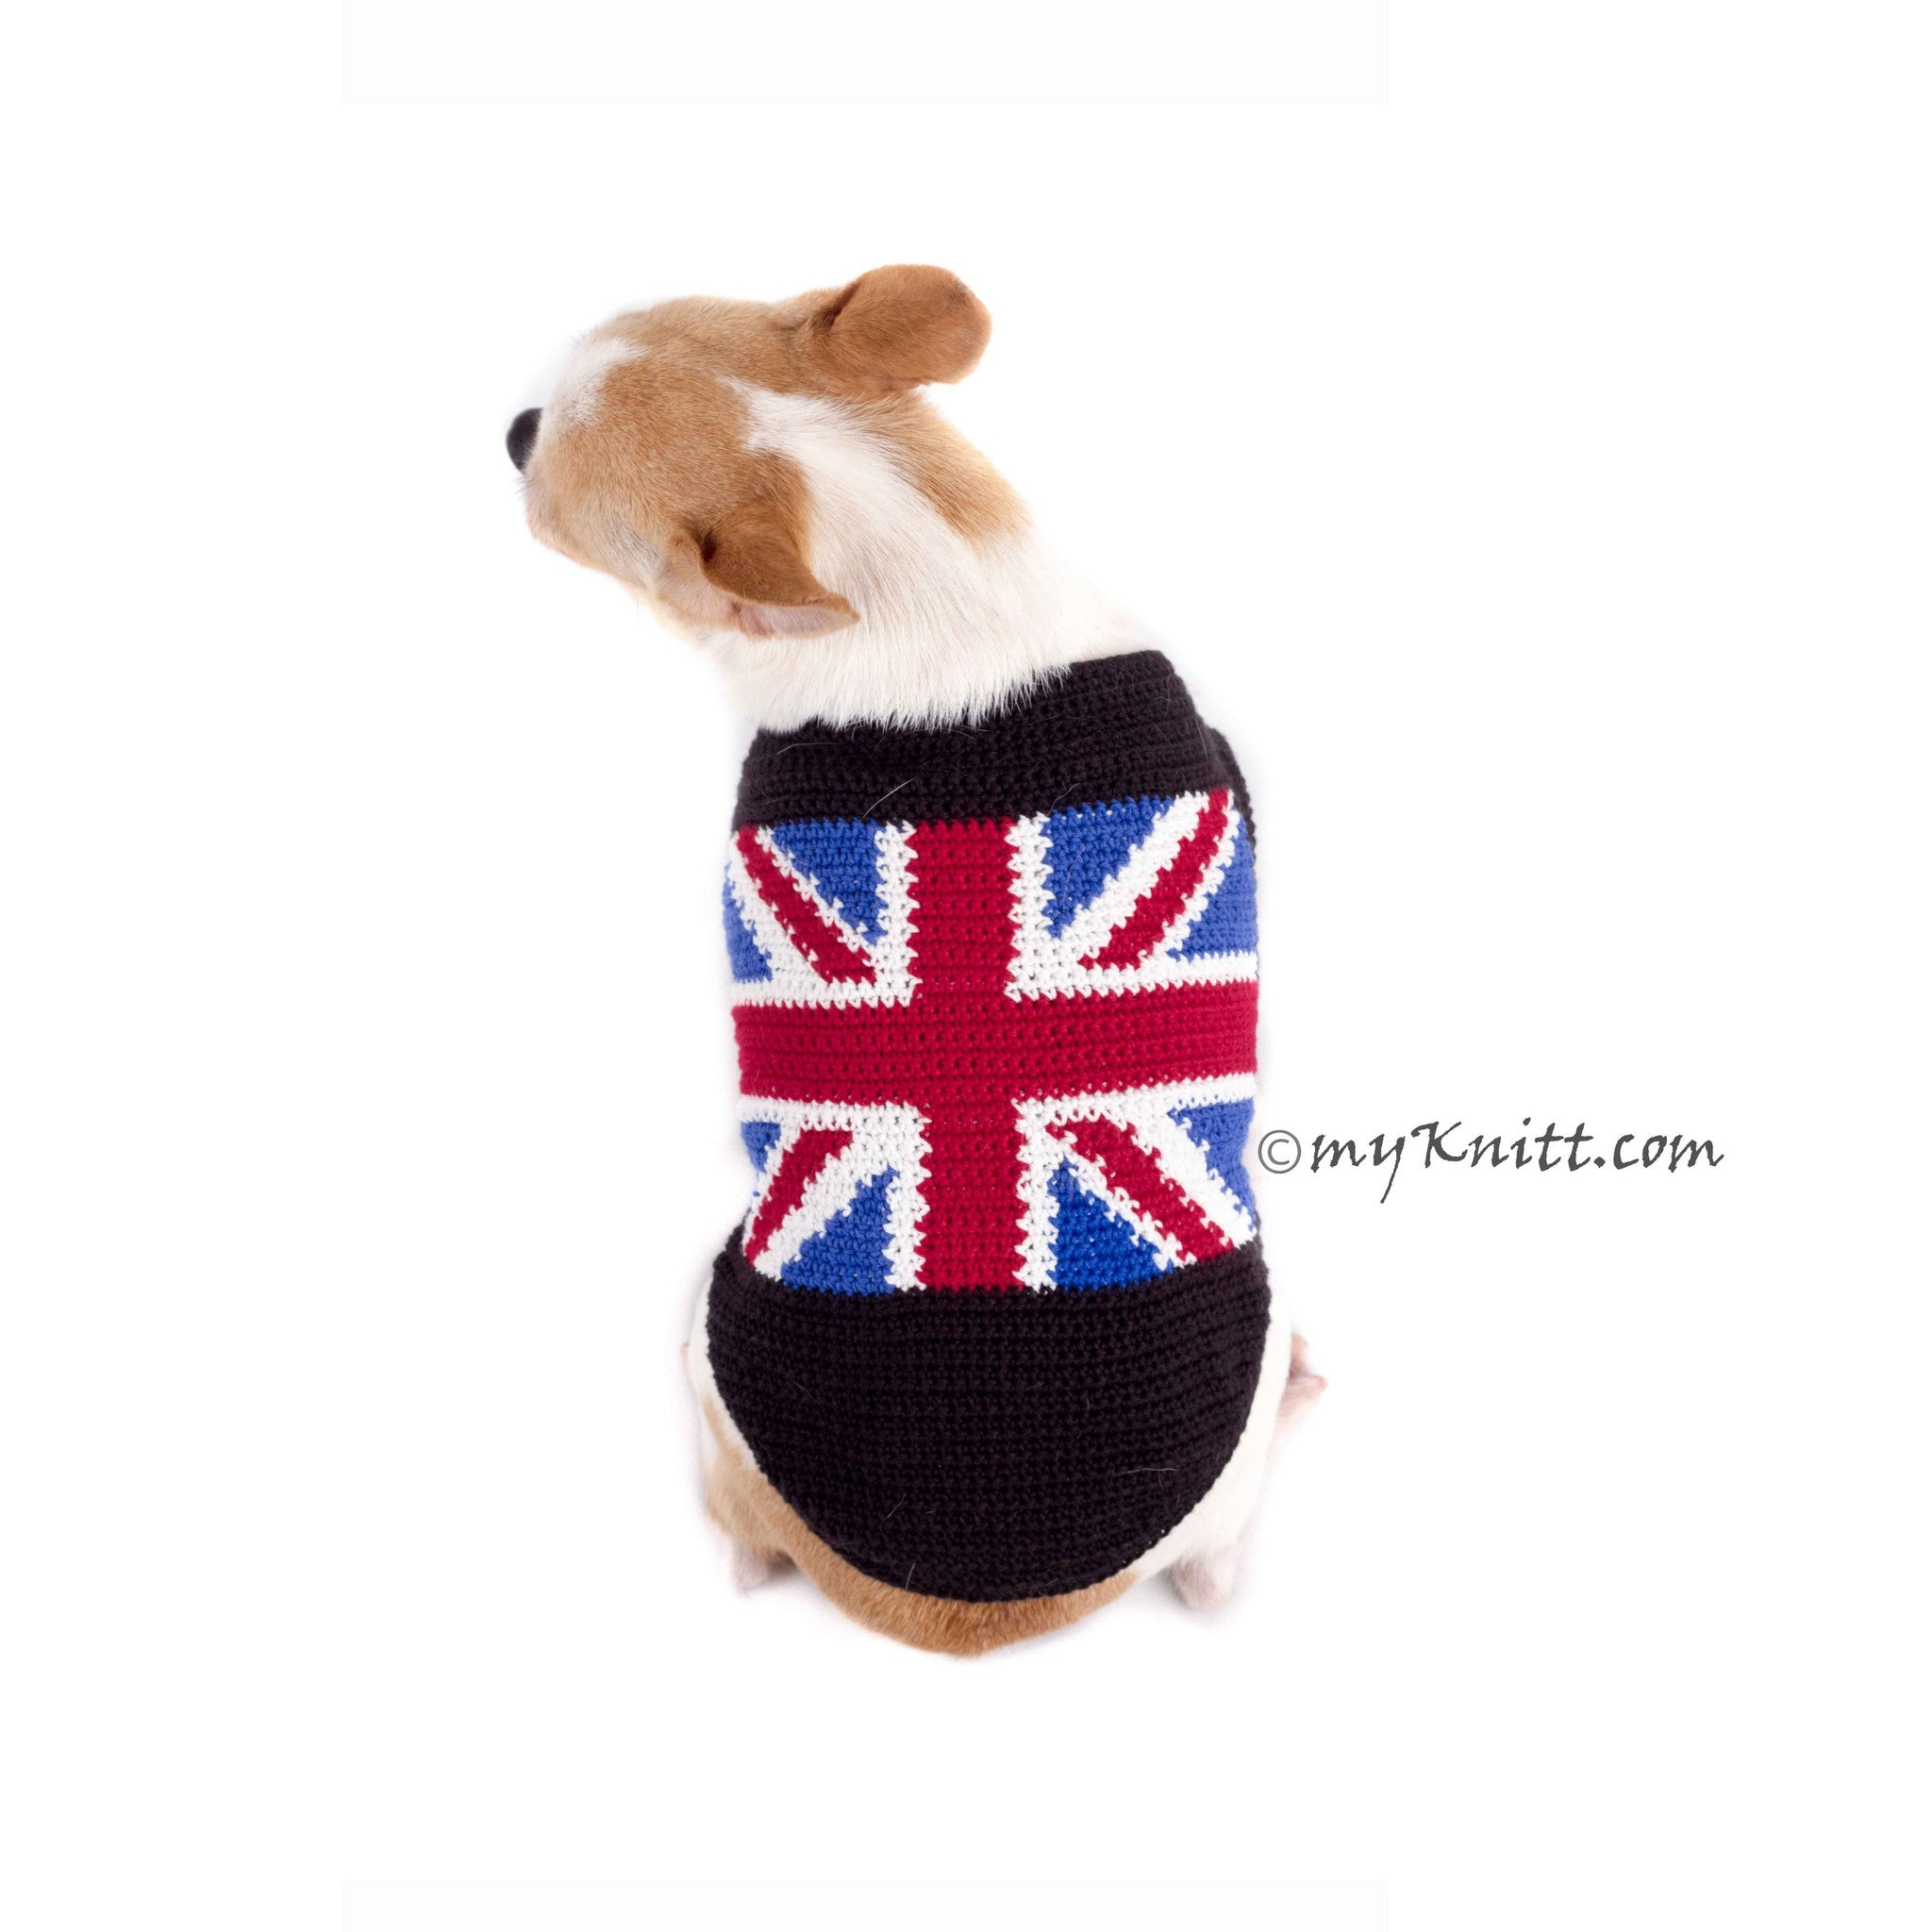 Union Jack Dog Clothes UK British Flag Shirts DK789